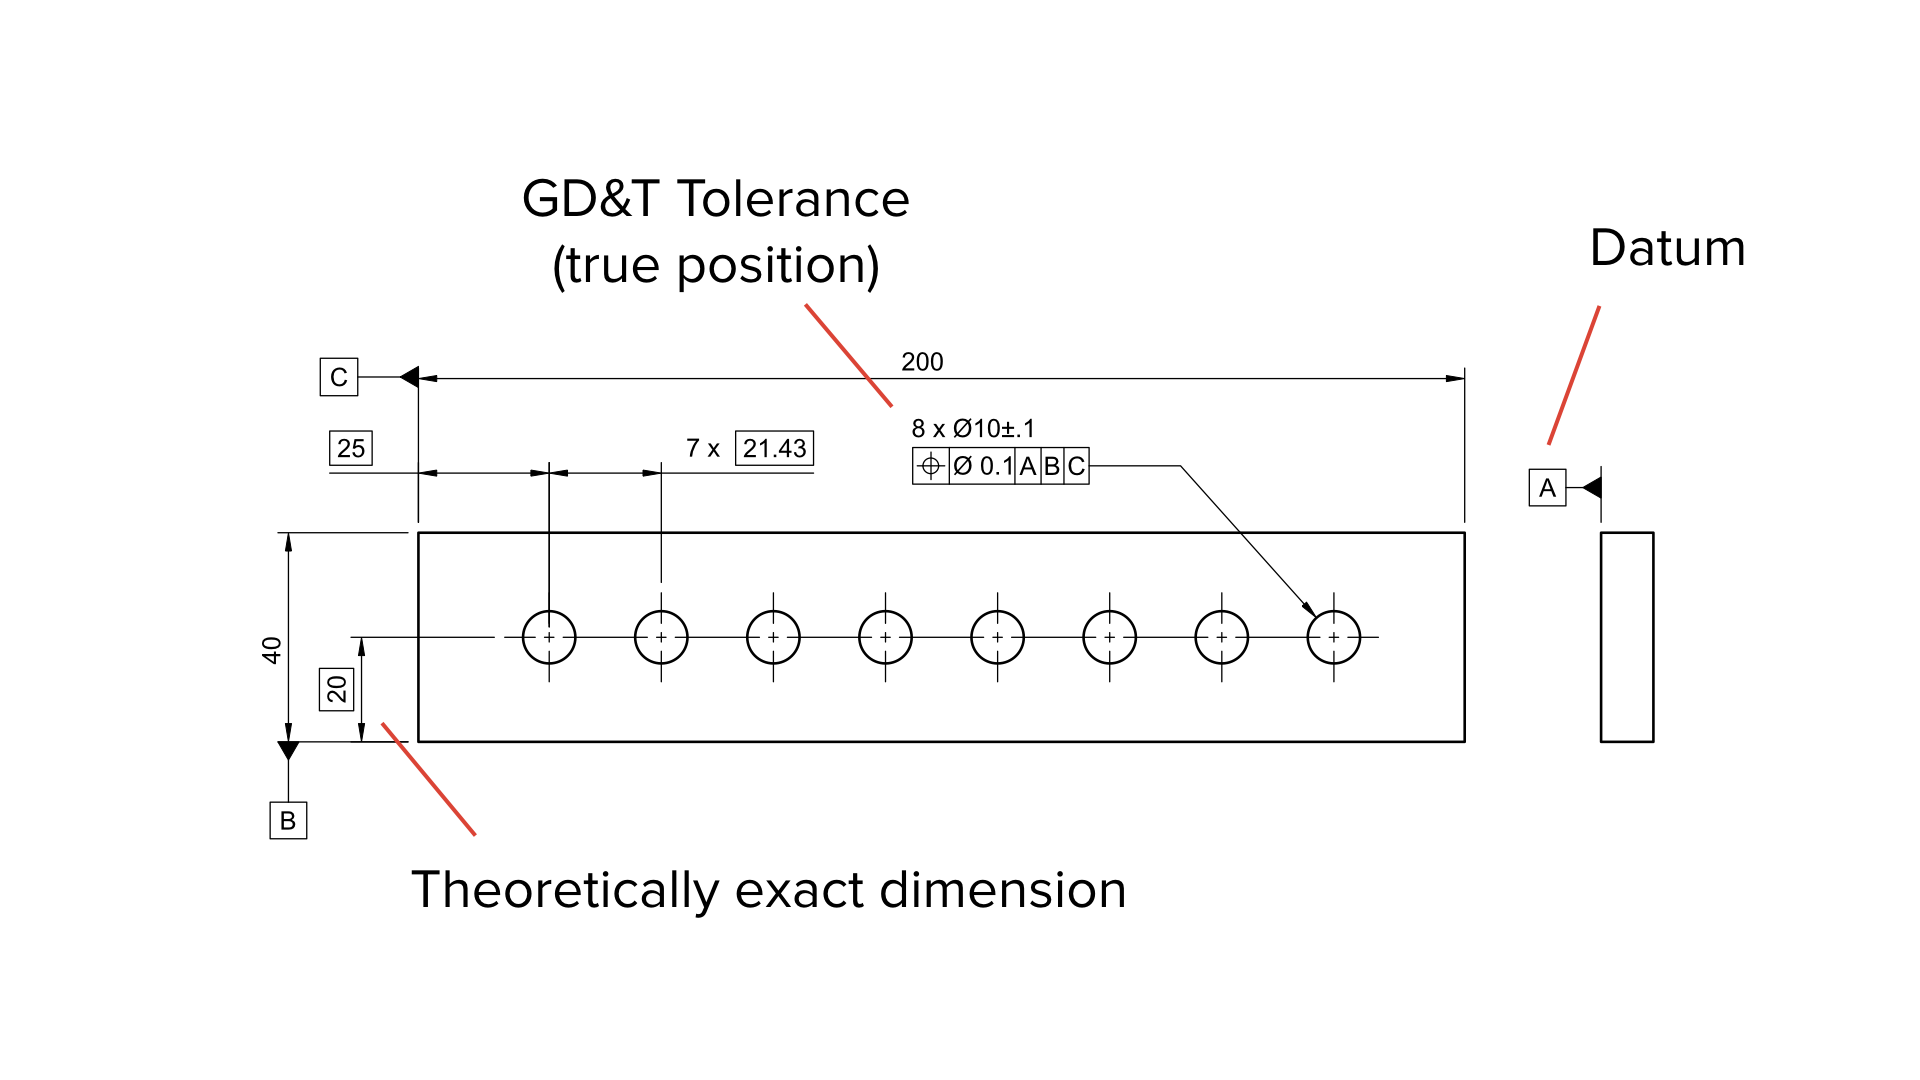 Example part dimensioned using GD&T